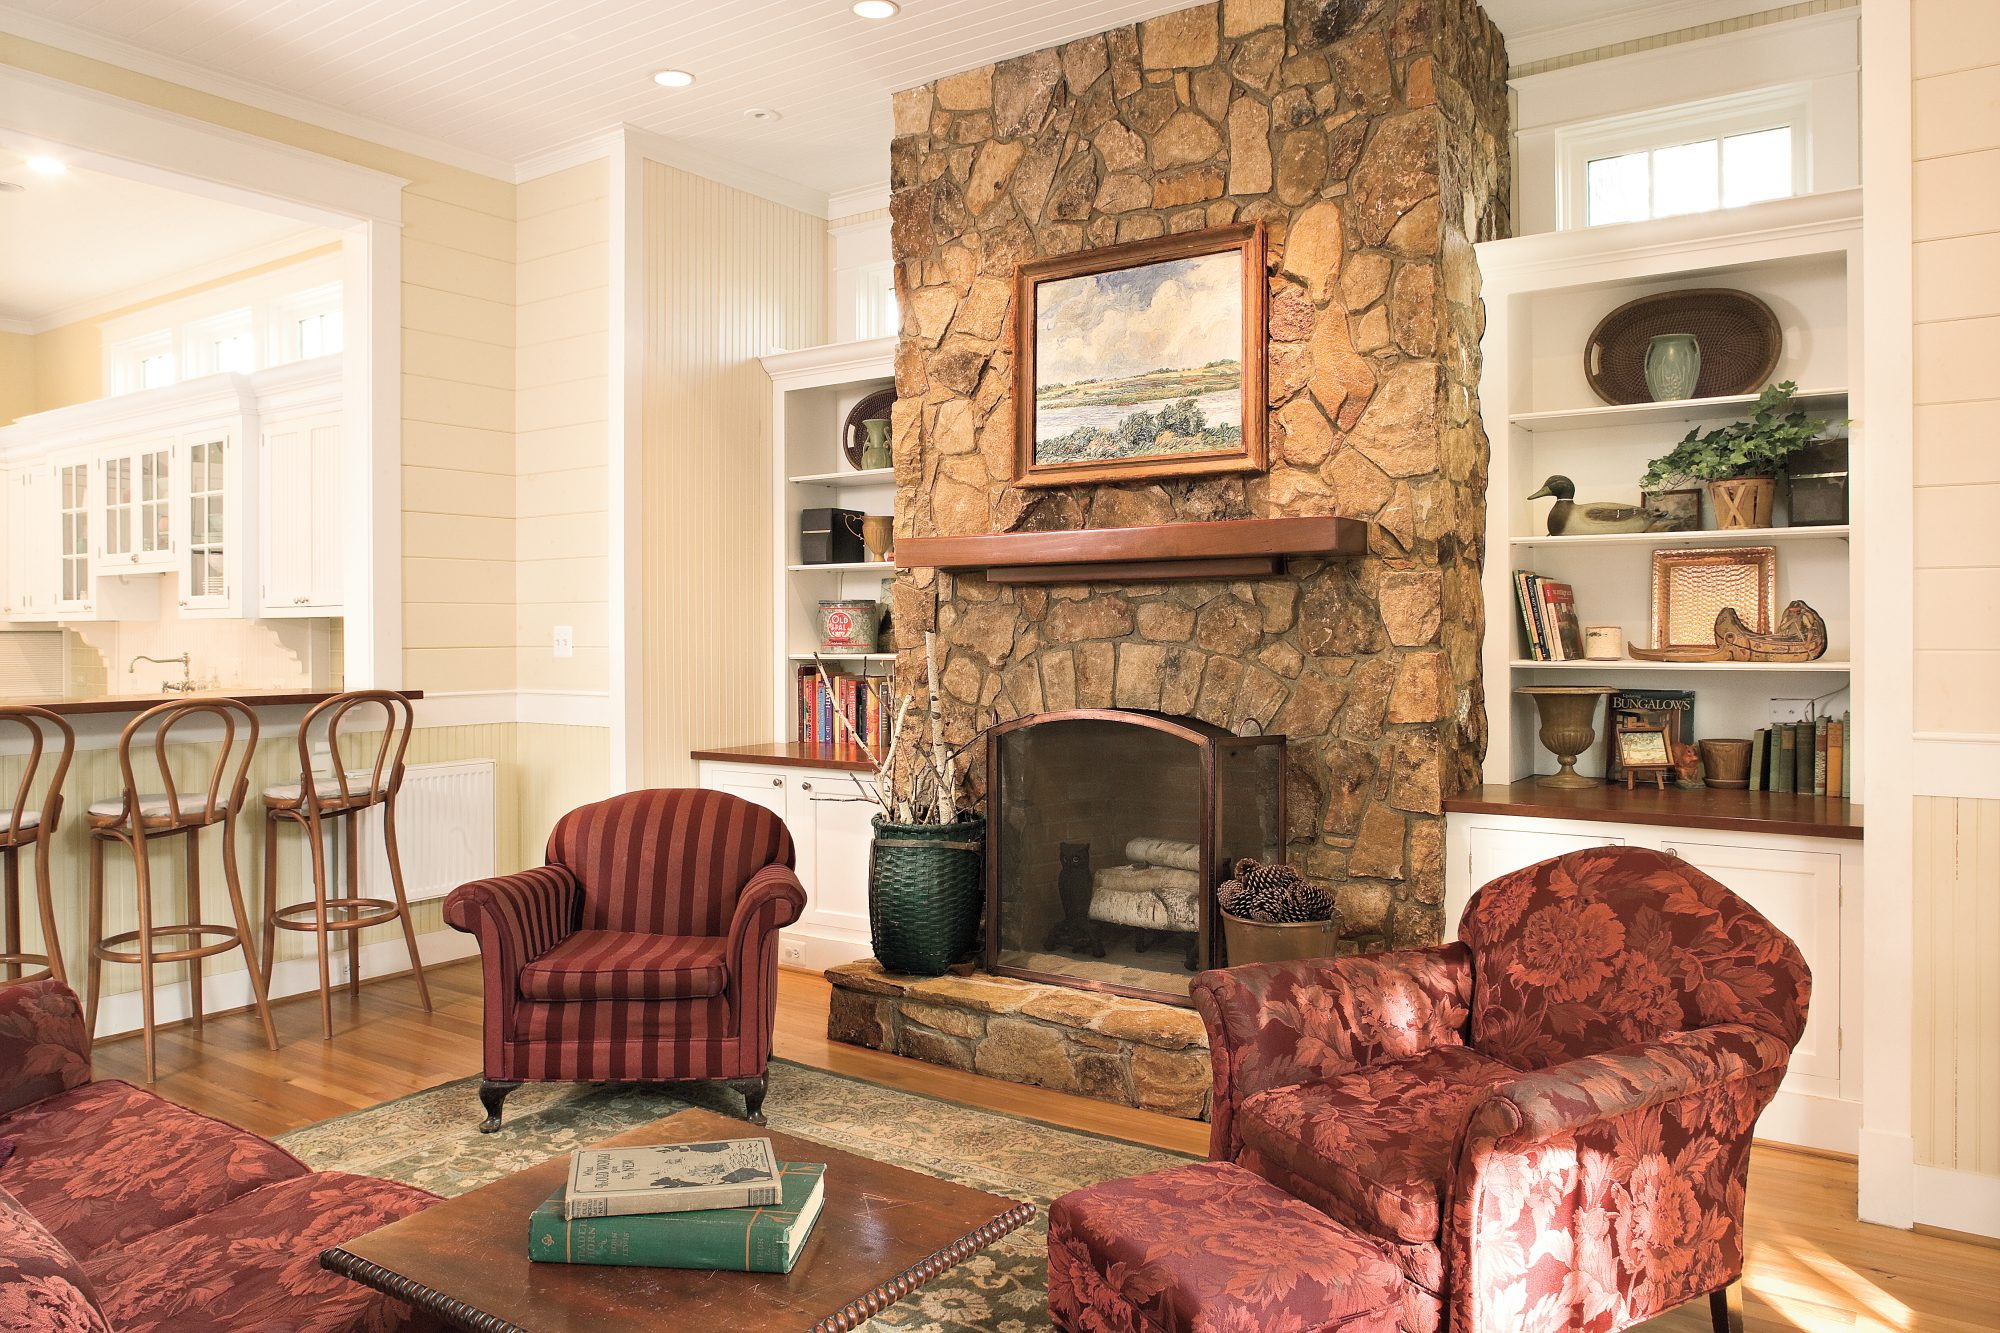 Best Renovation & Addition- Comfort With Character